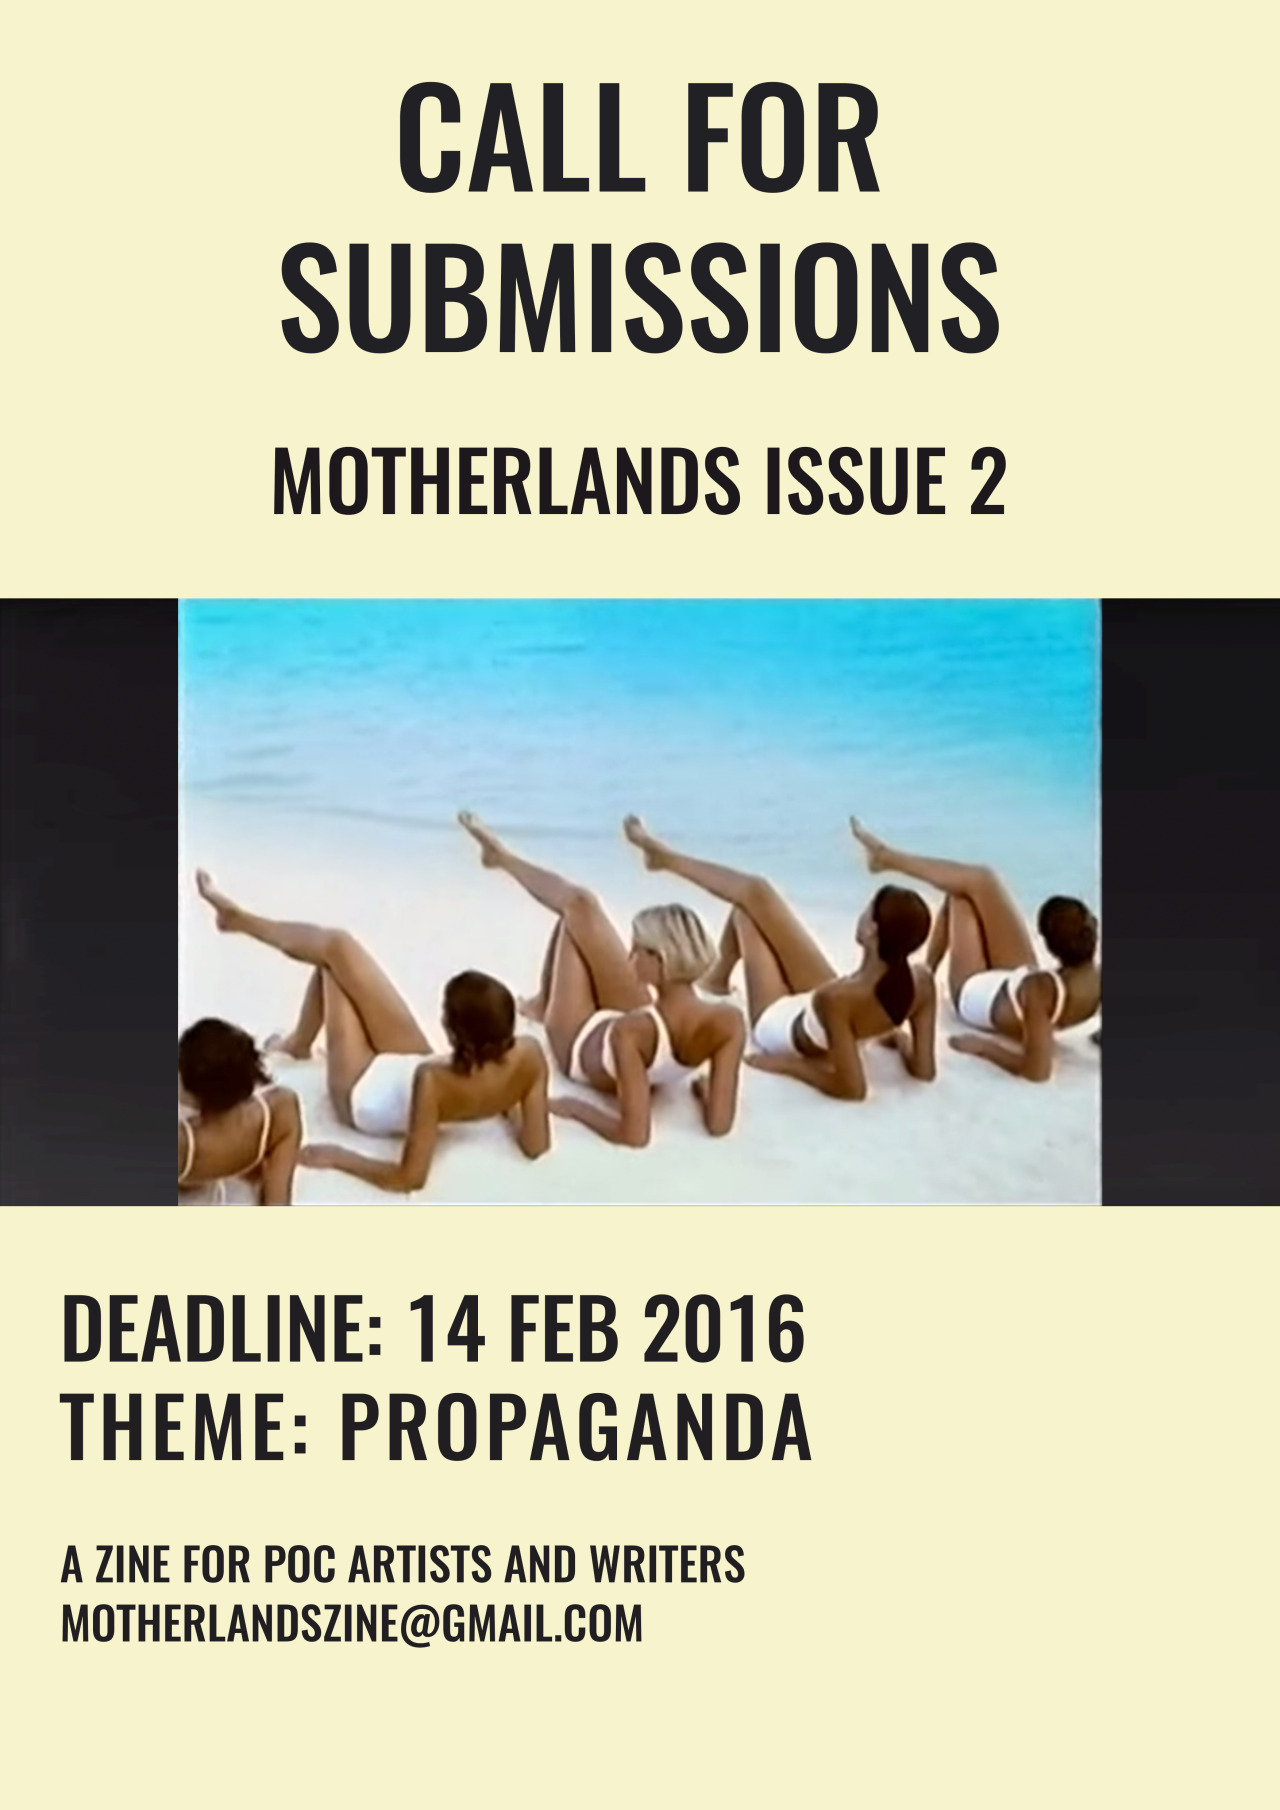 Motherlands motherlands an independent arts zine for and by people of colour and is